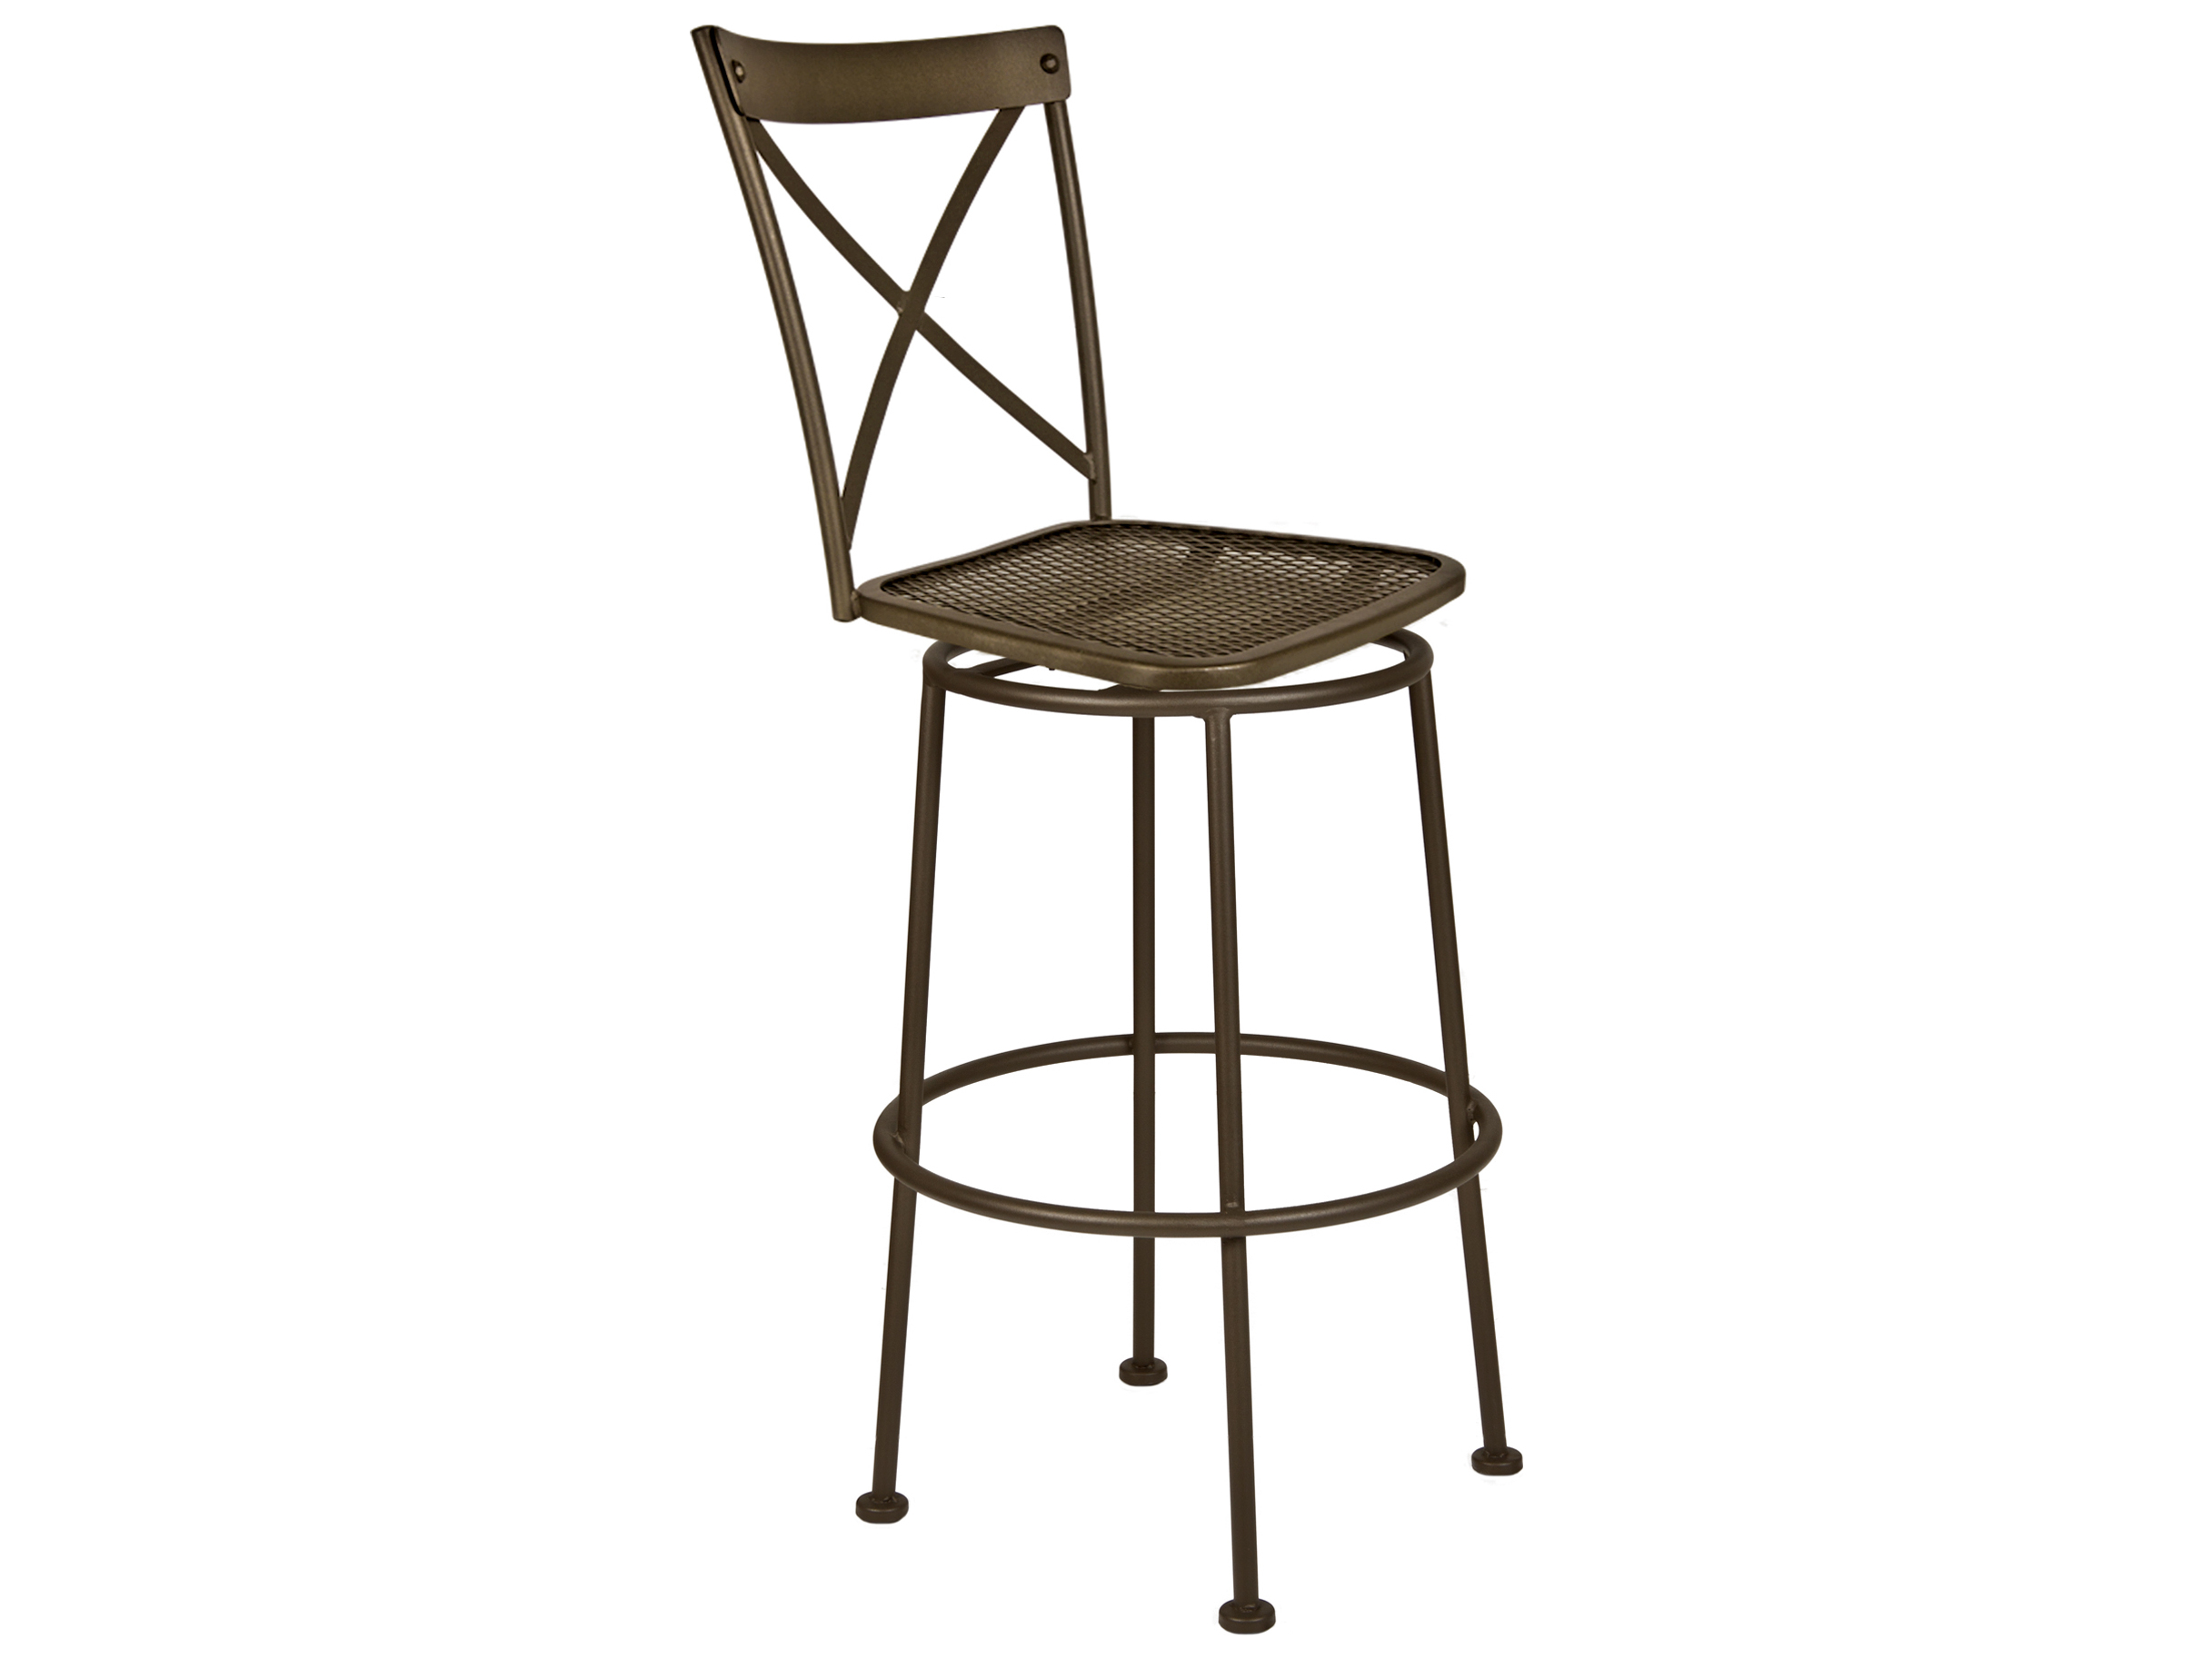 Ow Lee Villa Wrought Iron Armless Swivel Bar Stool